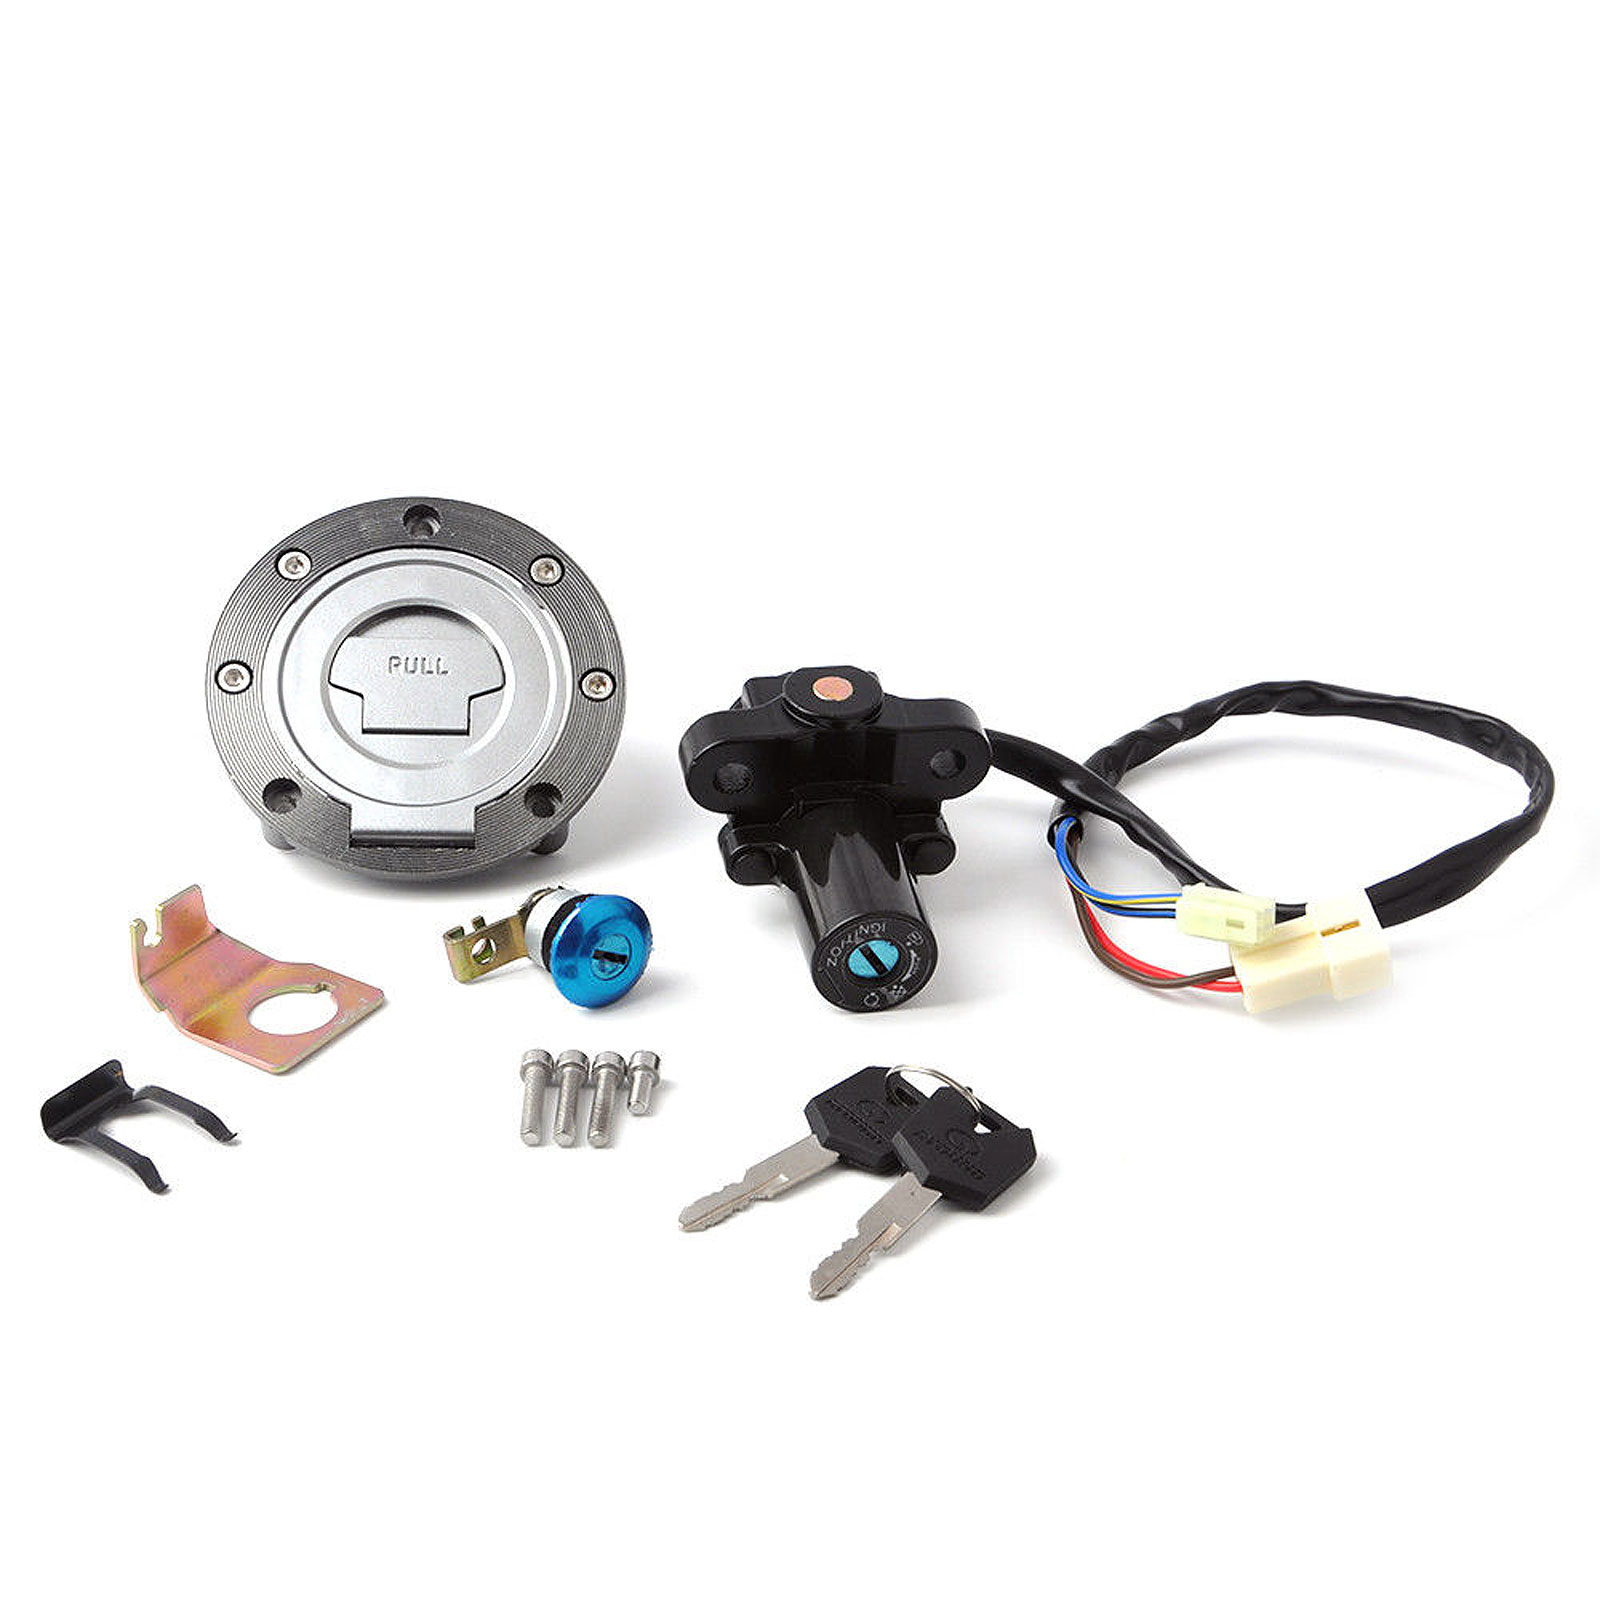 Yamaha YZF-R6 1999-2012 Replacement Ignition Switch Fuel ...